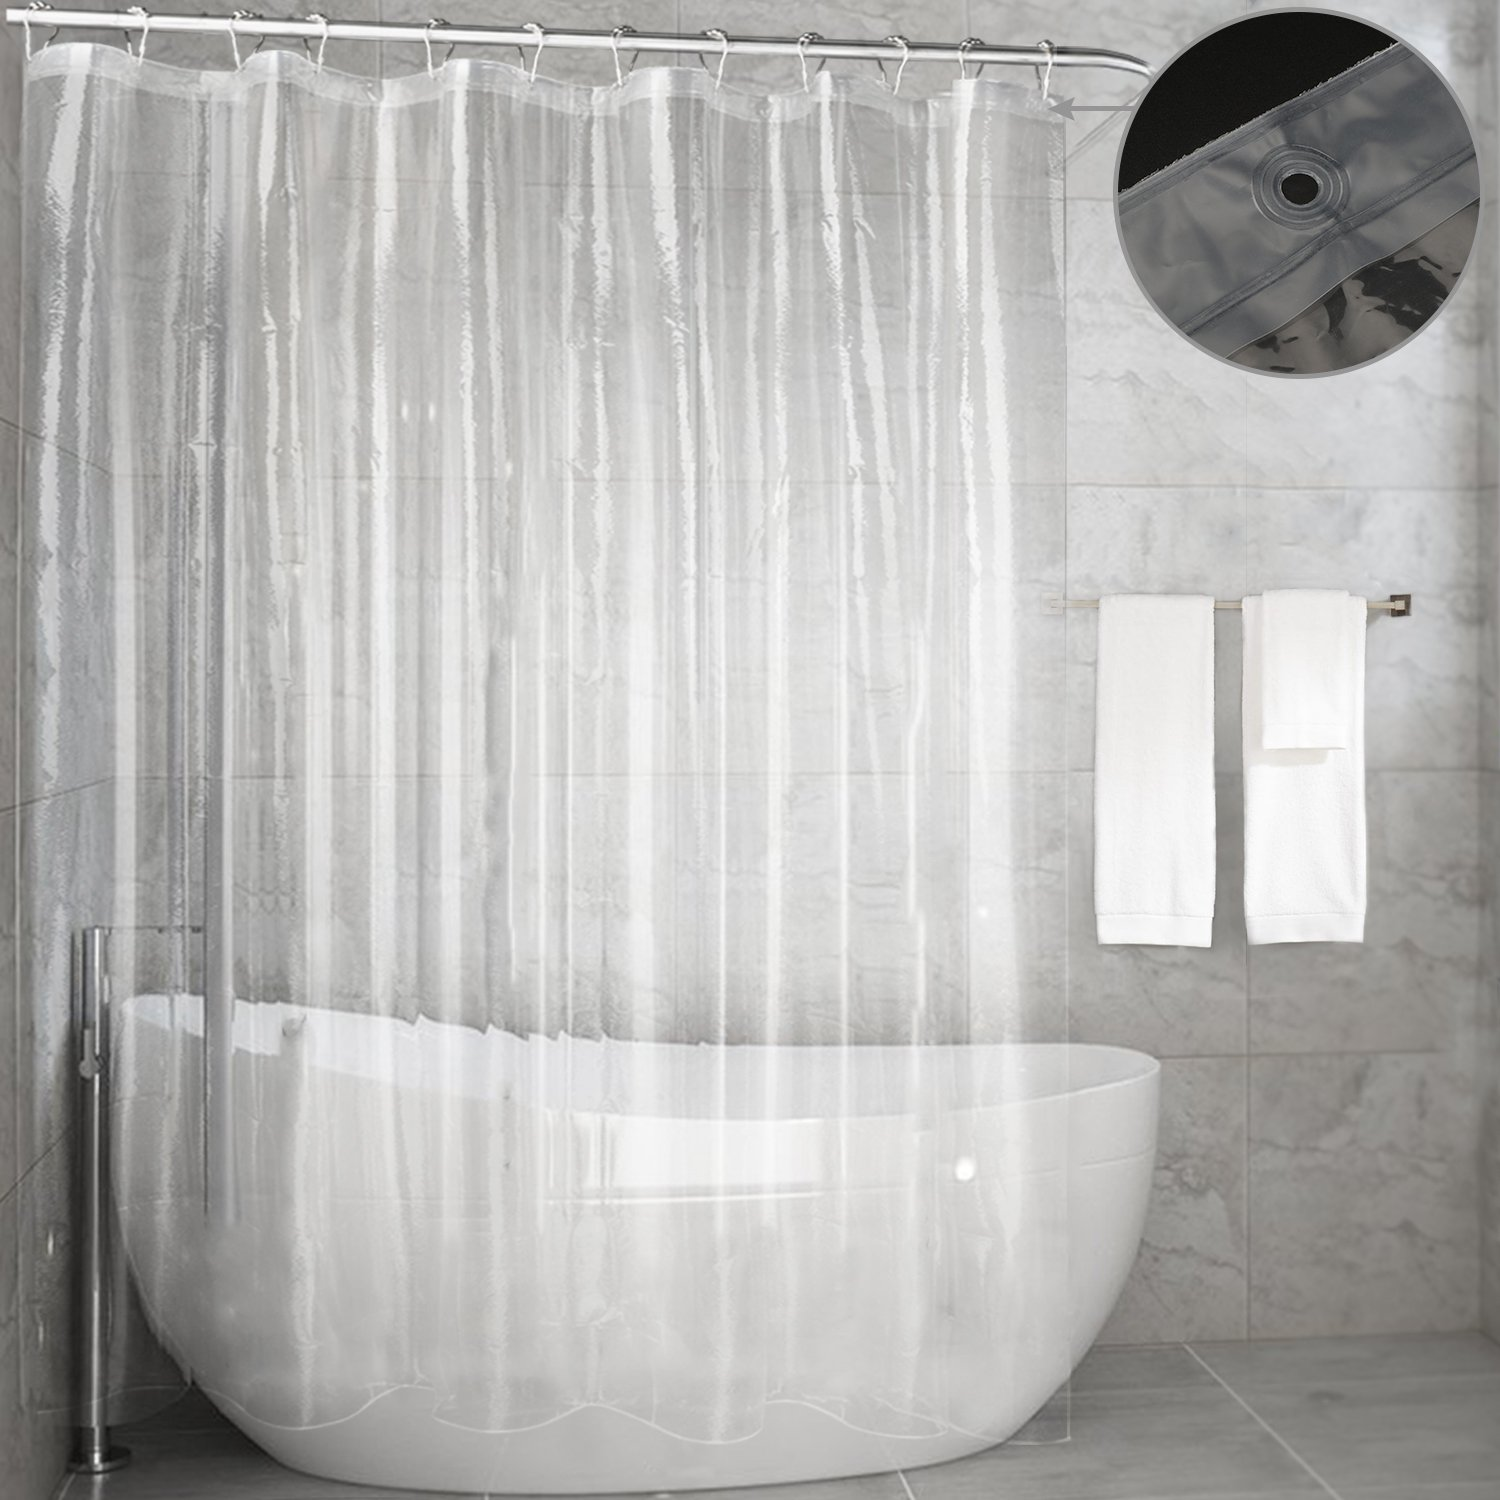 Clear Shower Curtain LinerFeagar MoldMildew Resistant Waterproof Anti Bacterial 72x72 Inch Eco Friendly PVC Free Non ToxicOdorless Bathroom For